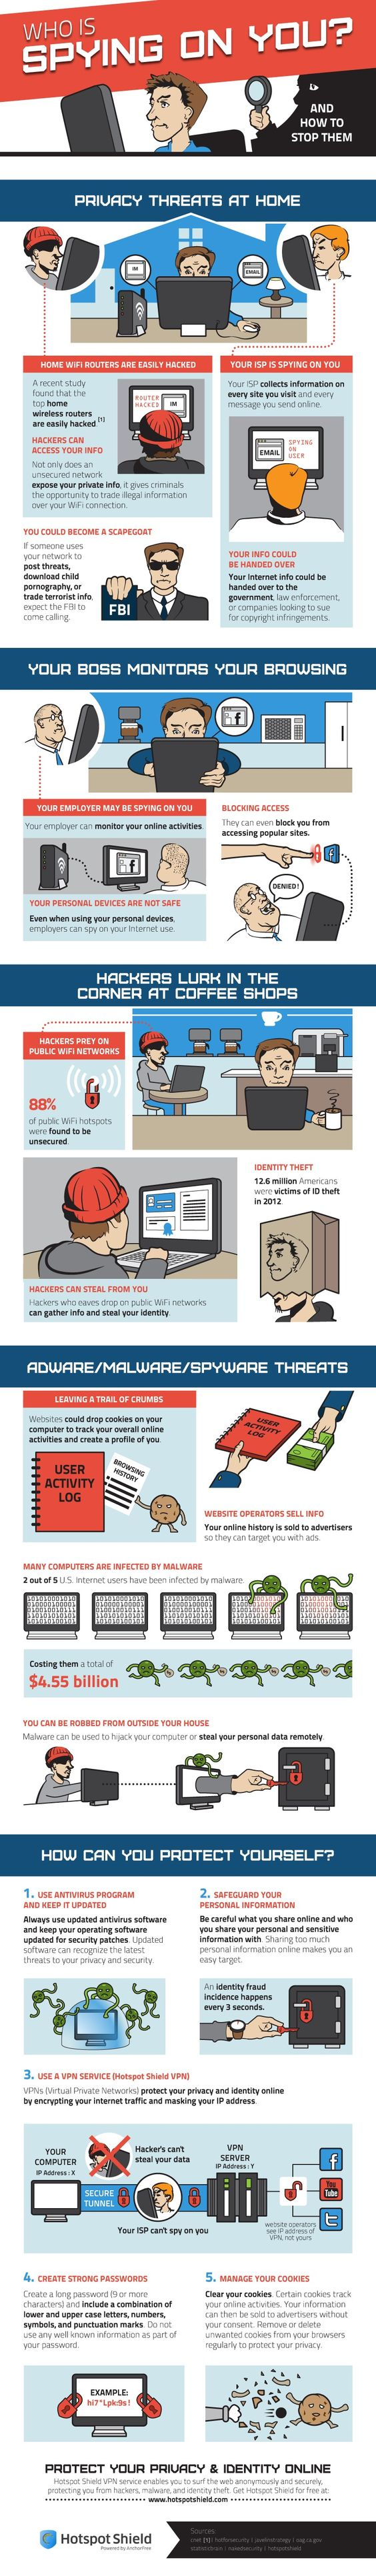 Public Wi-Fi Security Guide Infographic